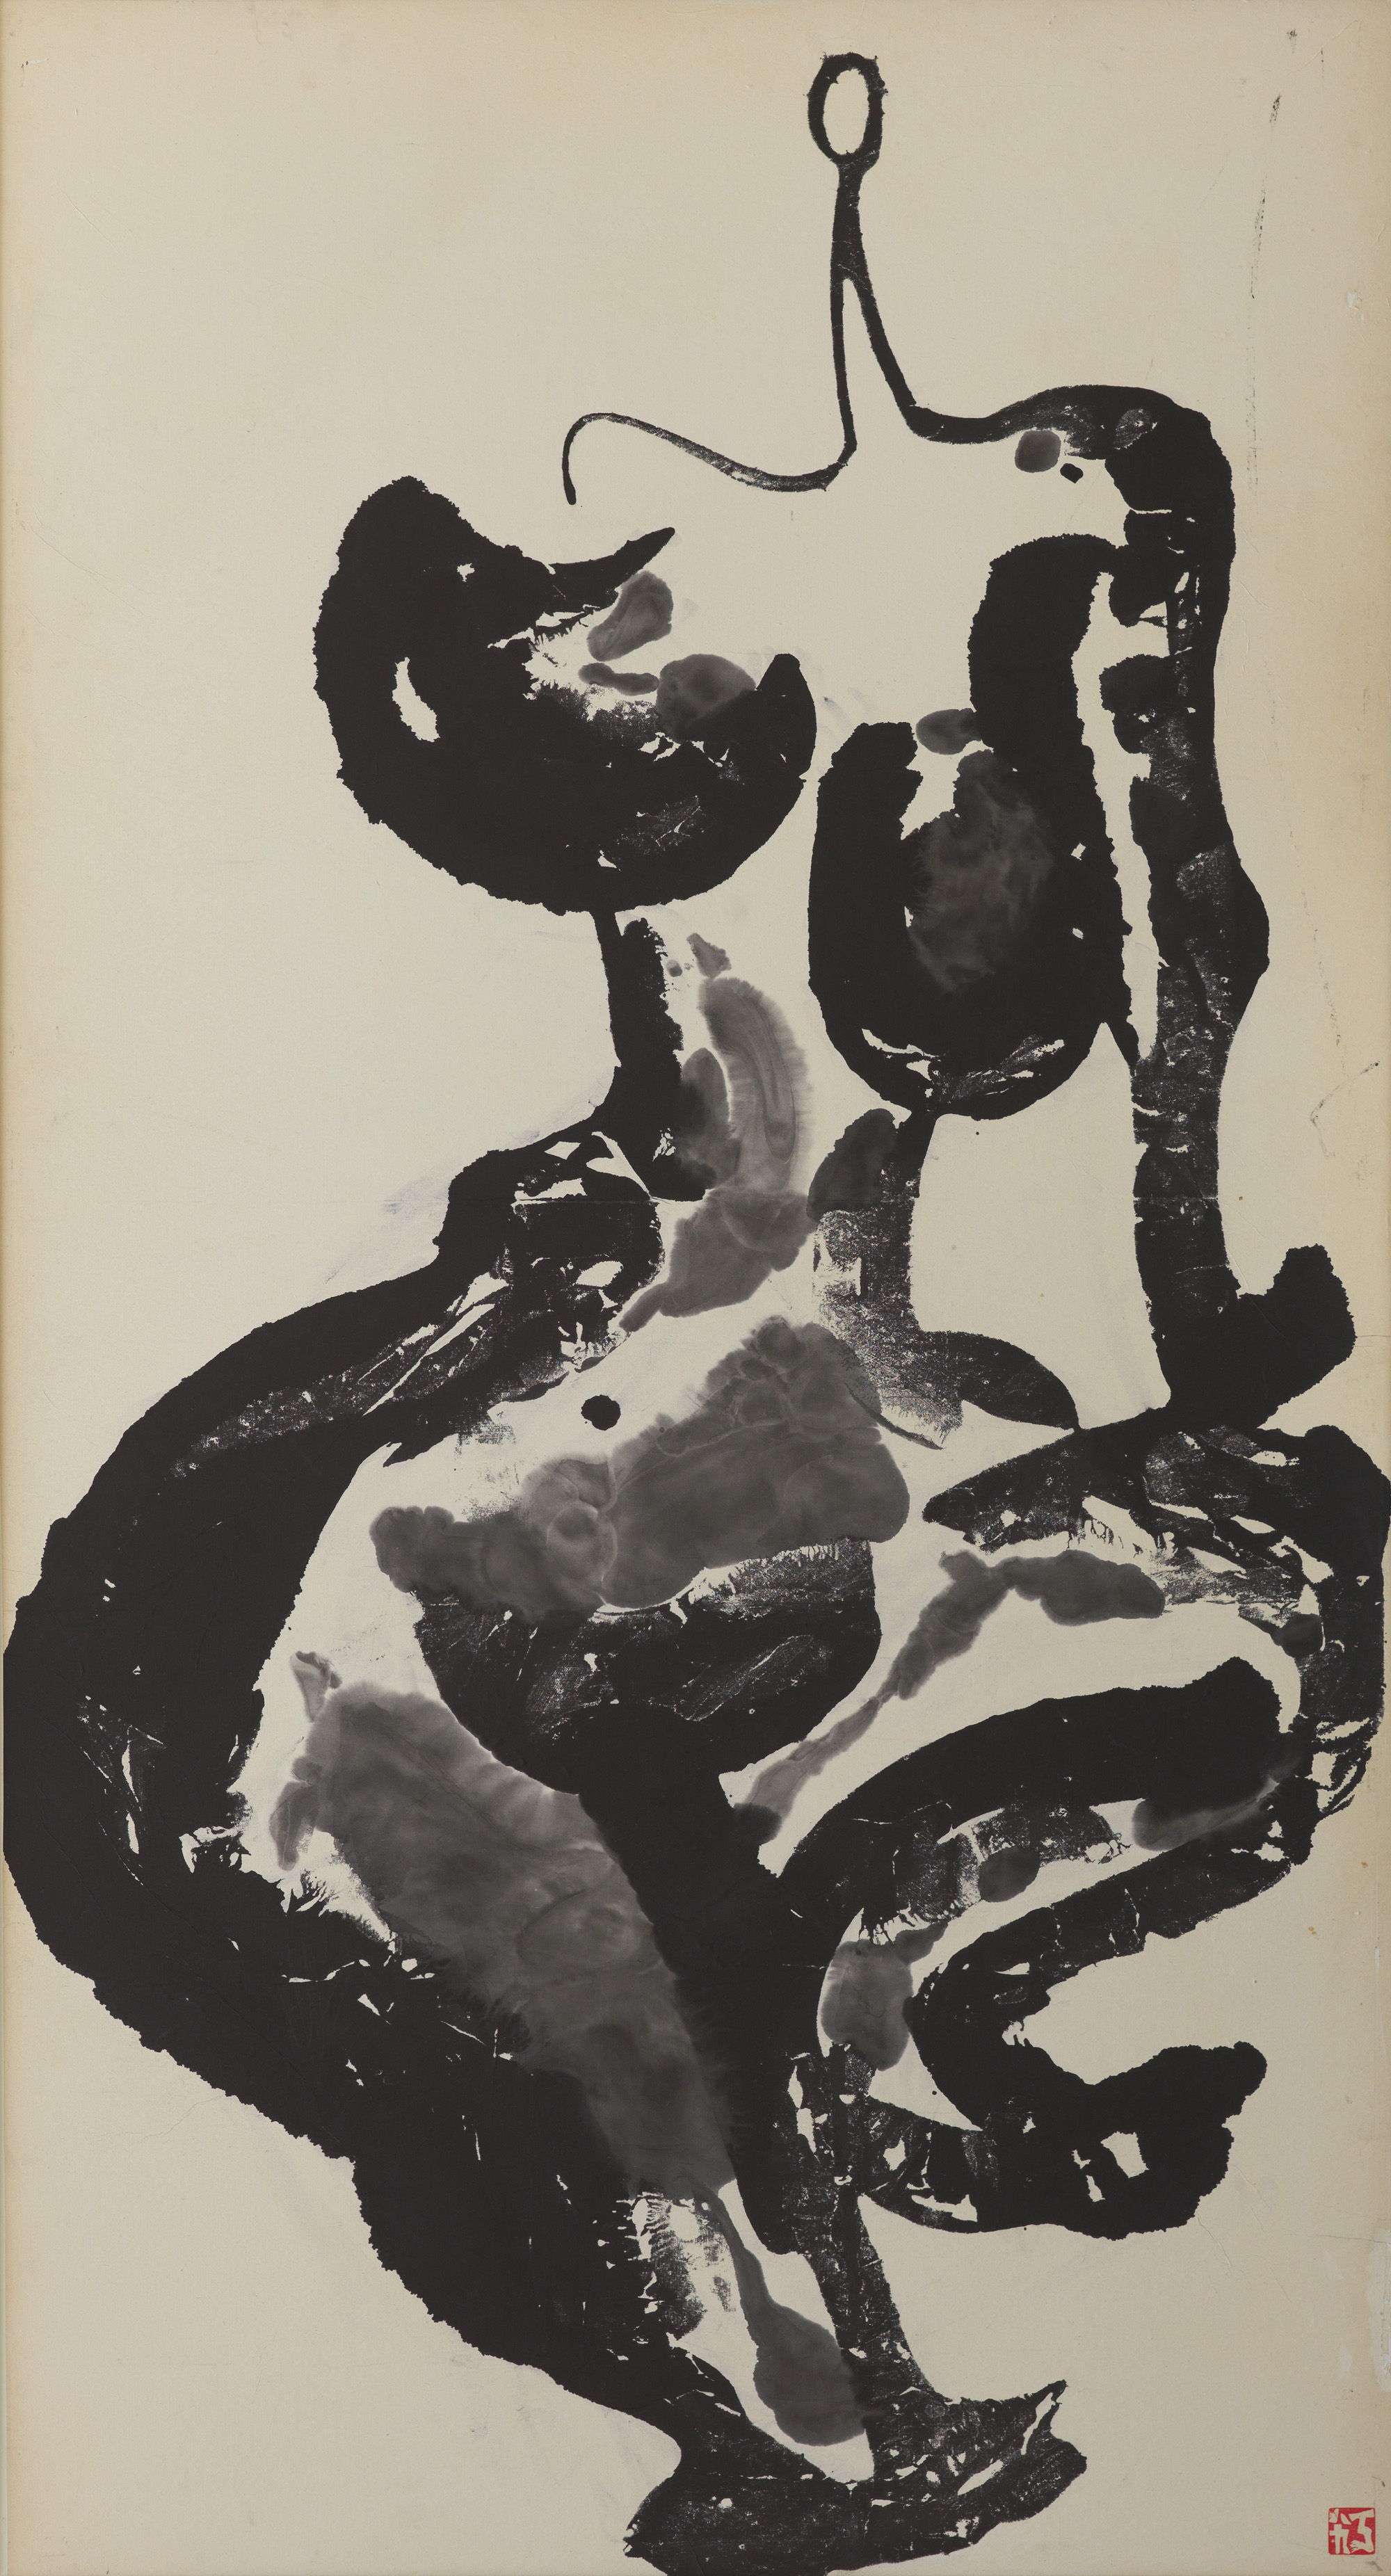 Untitled, ink on paper, 180 x 100 cm, 1989